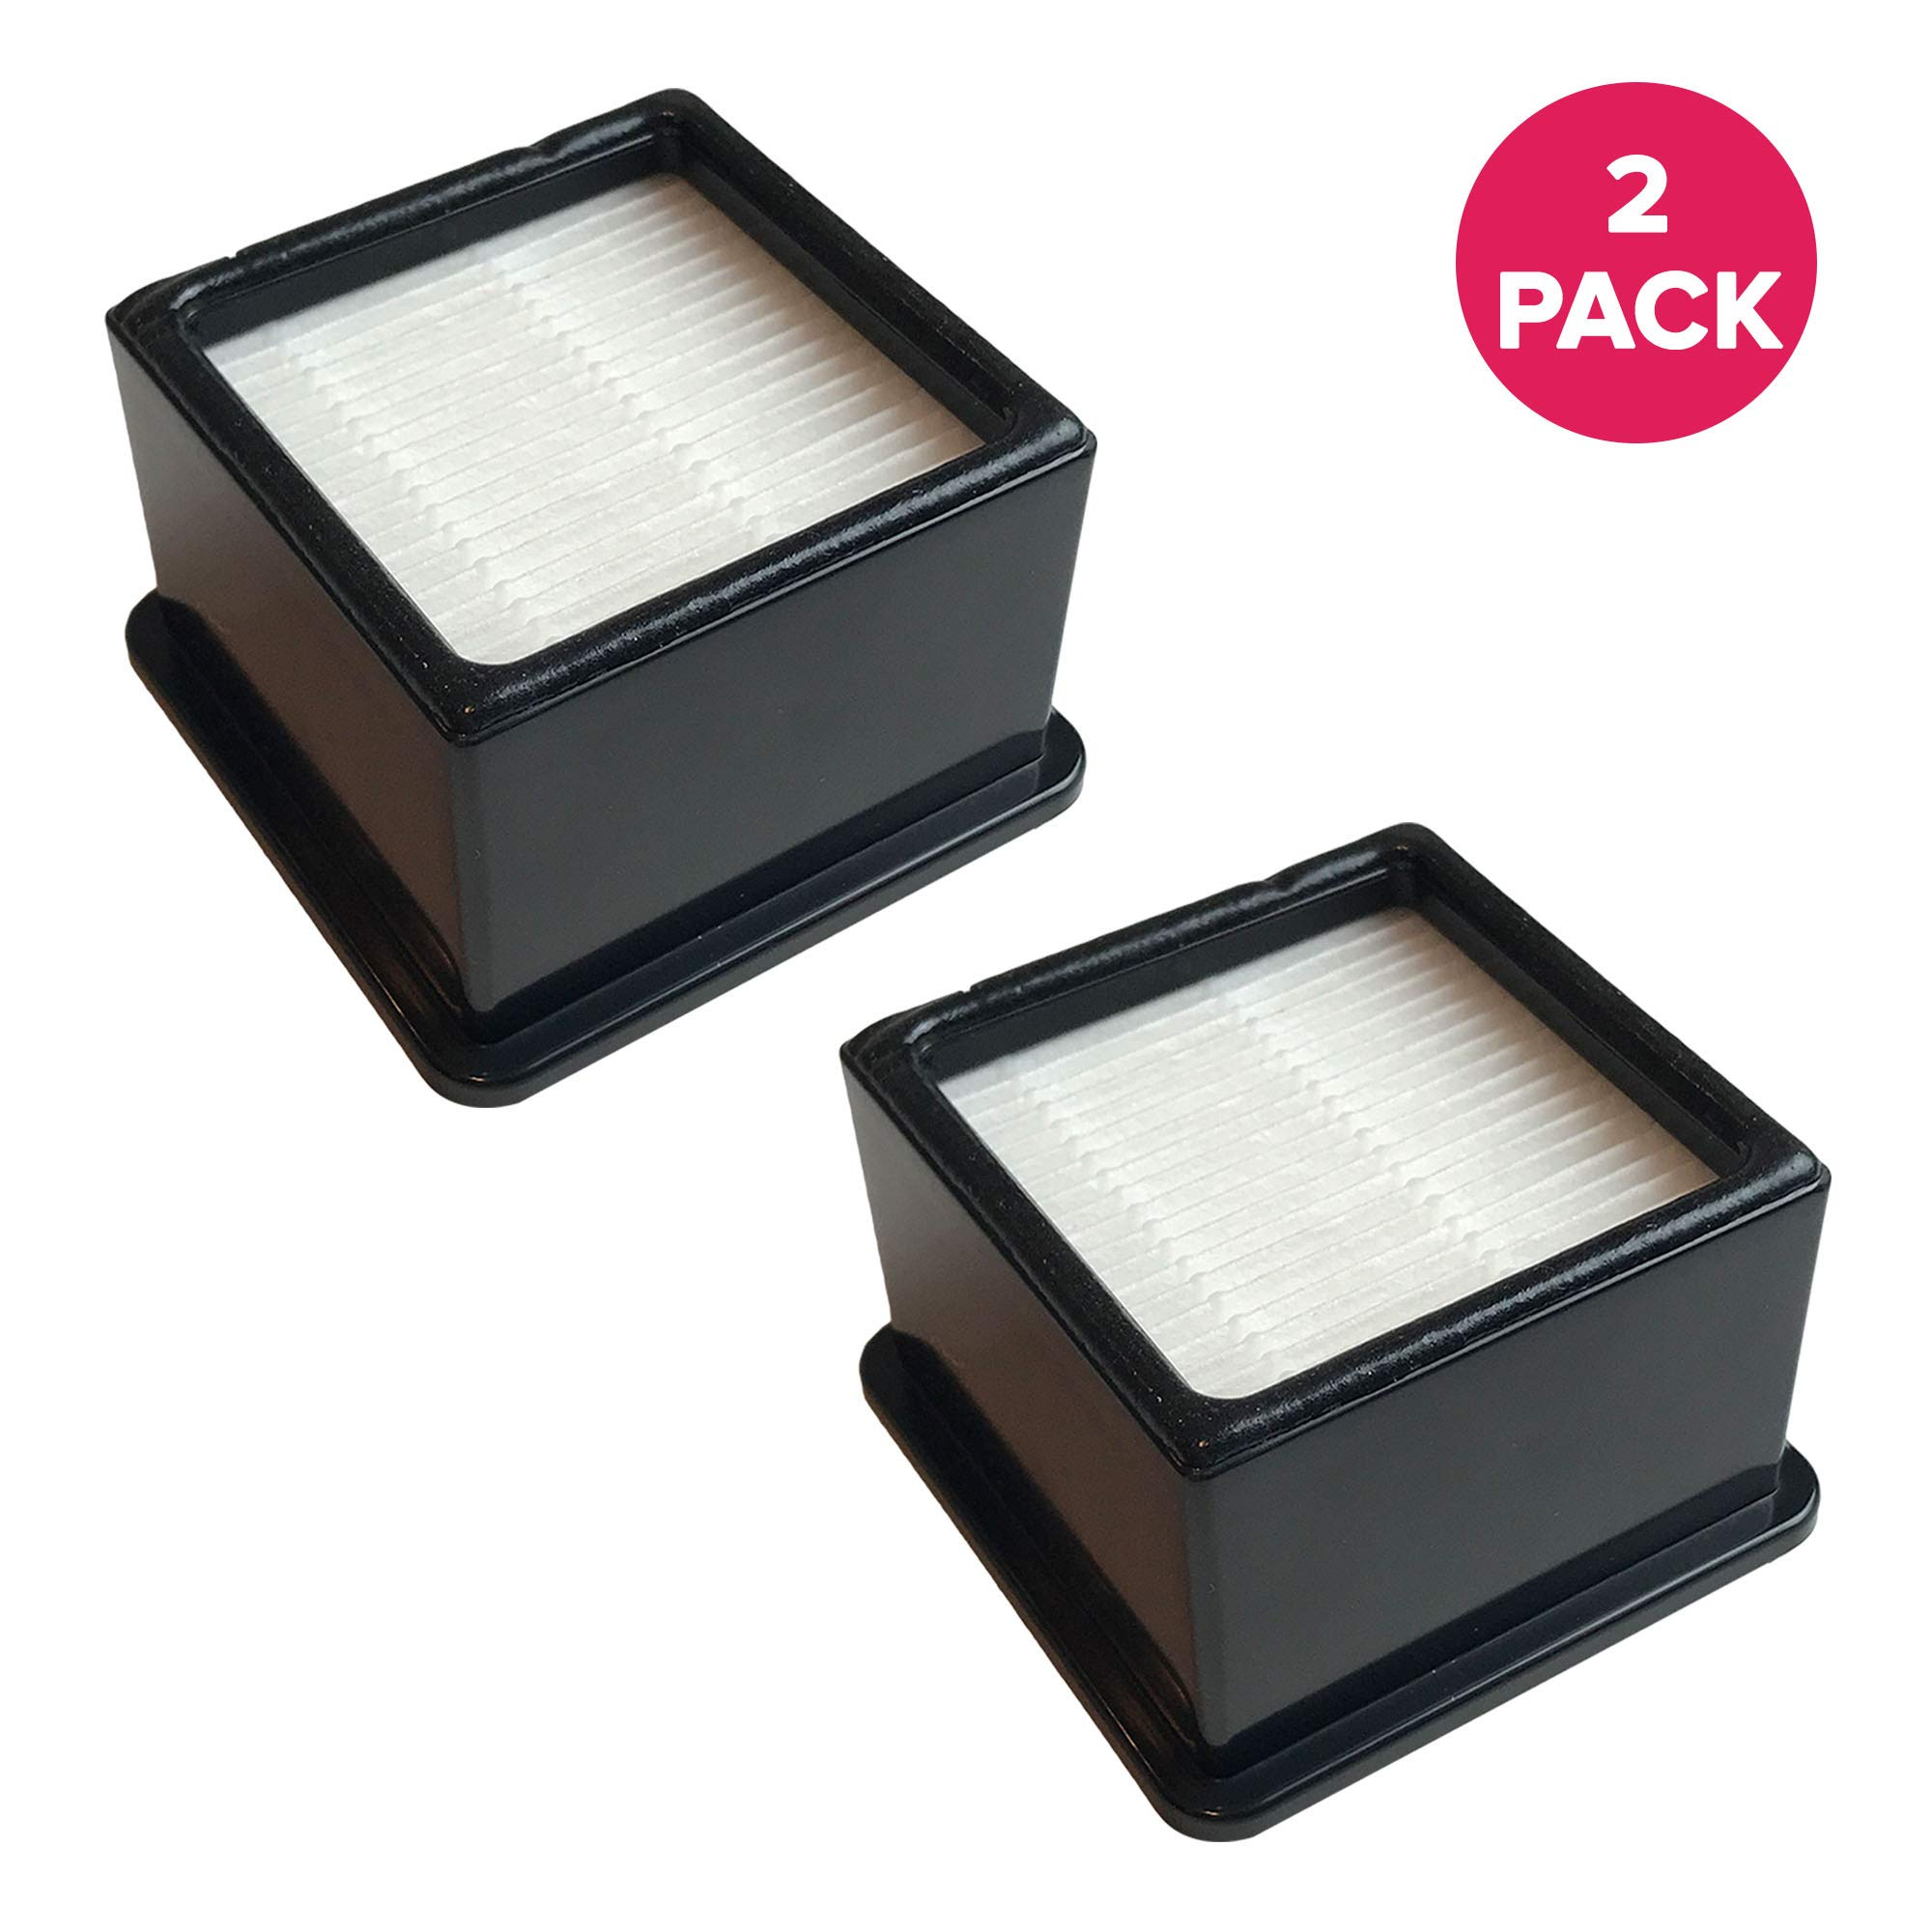 Crucial Vacuum Replacement Air Filters - Compatible with Dirt Devil F-43 Easy Lite Cyclonic Bagless Foam Vacuum Cleaner Filter - HEPA Style Part - Replace Parts #F43 2PY1105000 1PY1106000 (2 Pack)